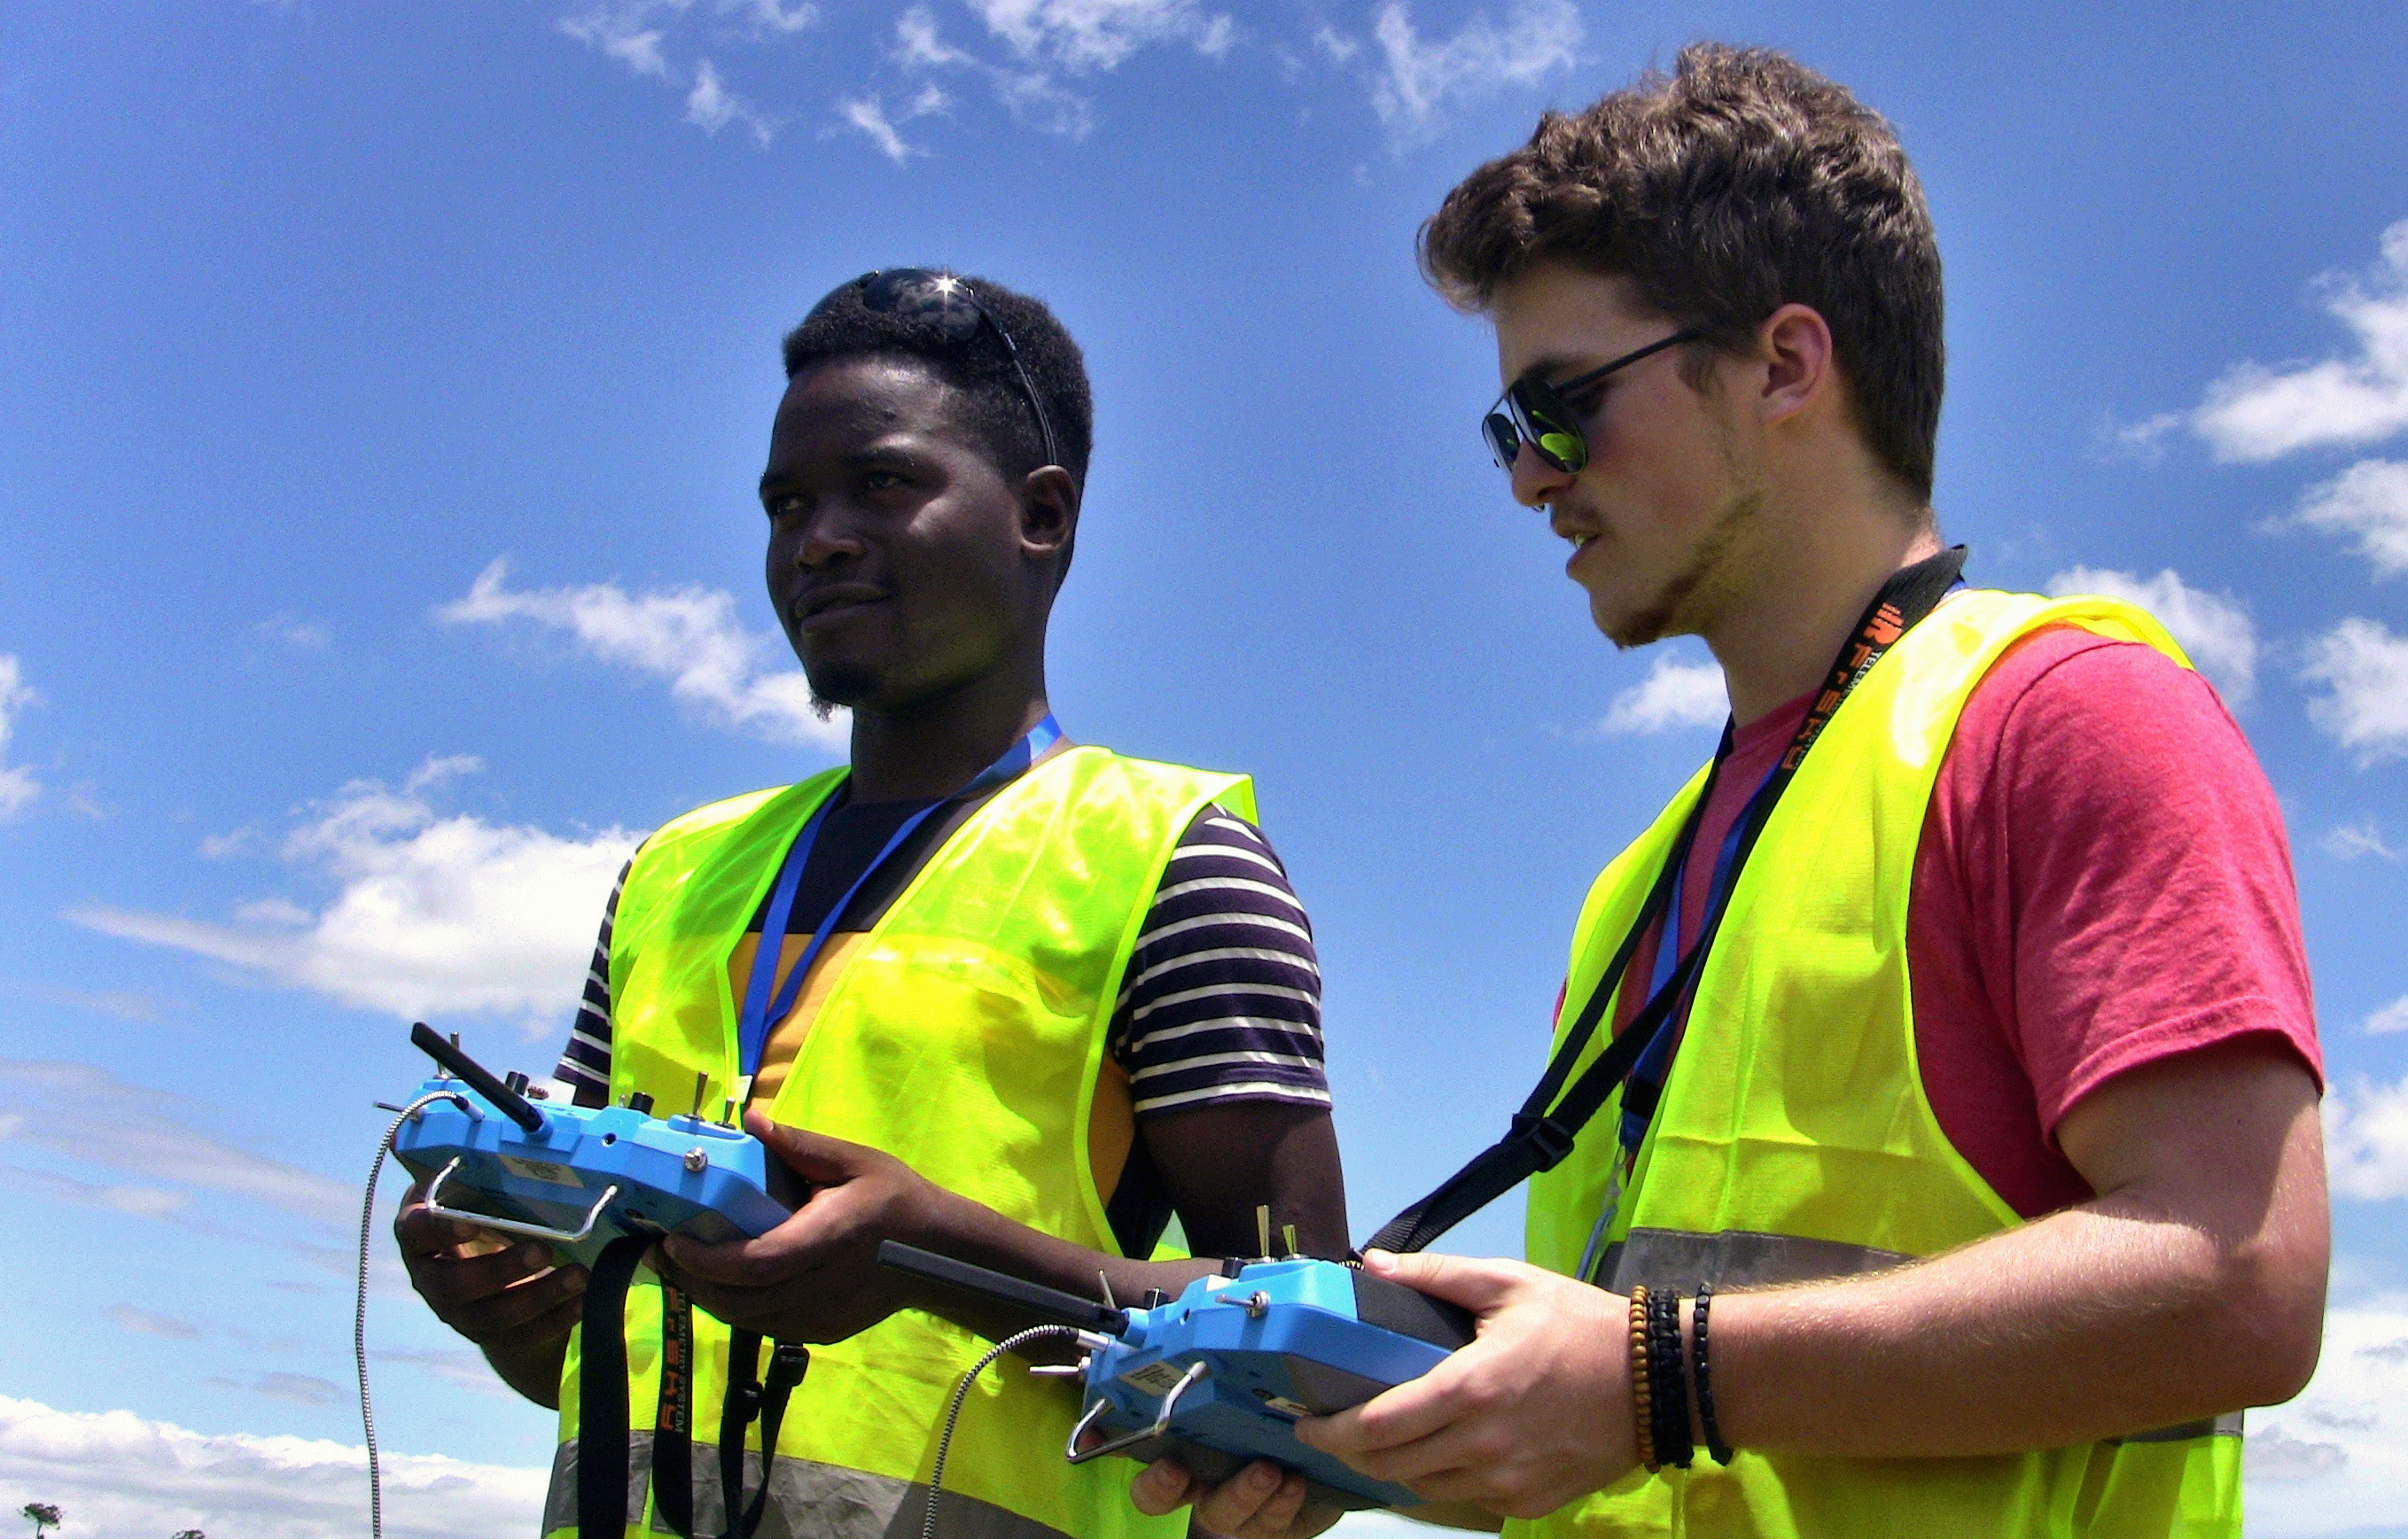 An instructor teaches how to operate a drone at the newly opened African Drone and Data Academy in Lilongwe, Malawi, January 24, 2020. Picture taken January 24, 2020. REUTERS/Eldson Chagara - RC28QE9M4AP3